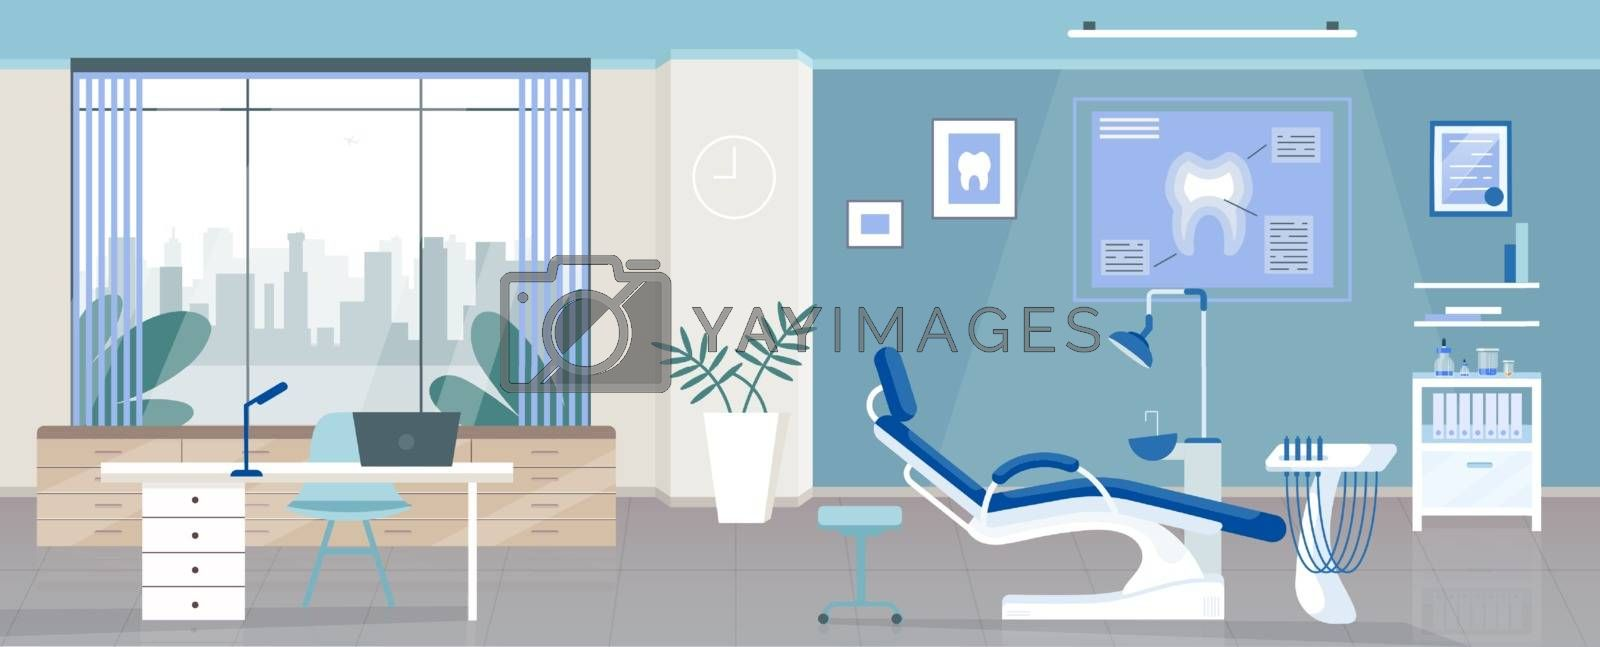 Dental room flat color vector illustration. Stomatology clinic, dentist office 2D cartoon interior design with orthodontic appliances on background. Odontology hospital, stomatologist workplace decor